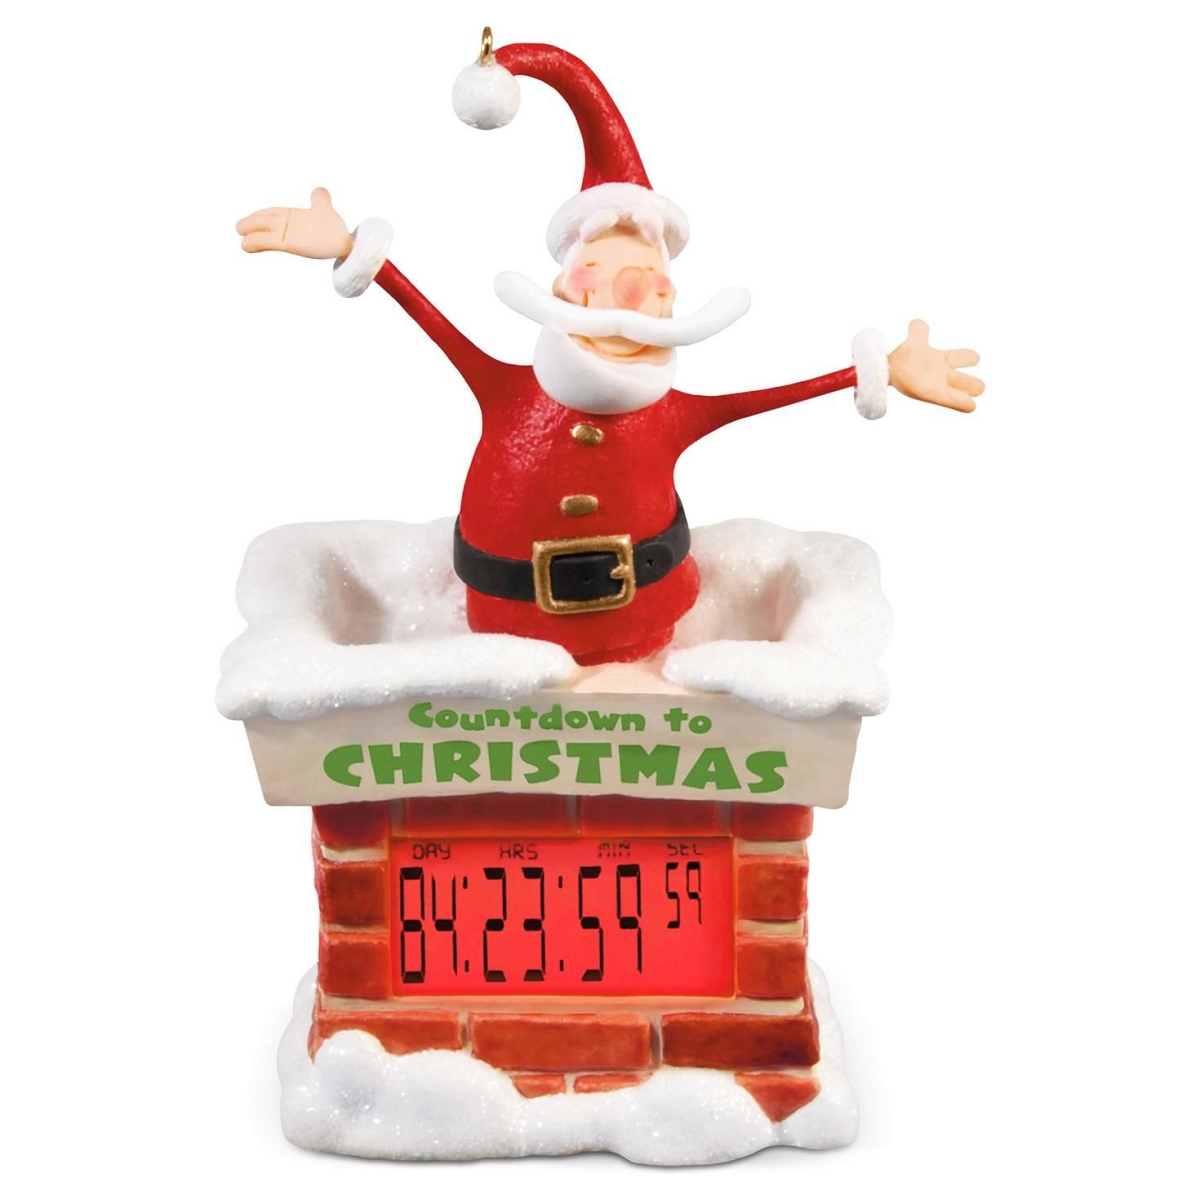 2016 Countdown To Christmas - Magic Countdown Clock